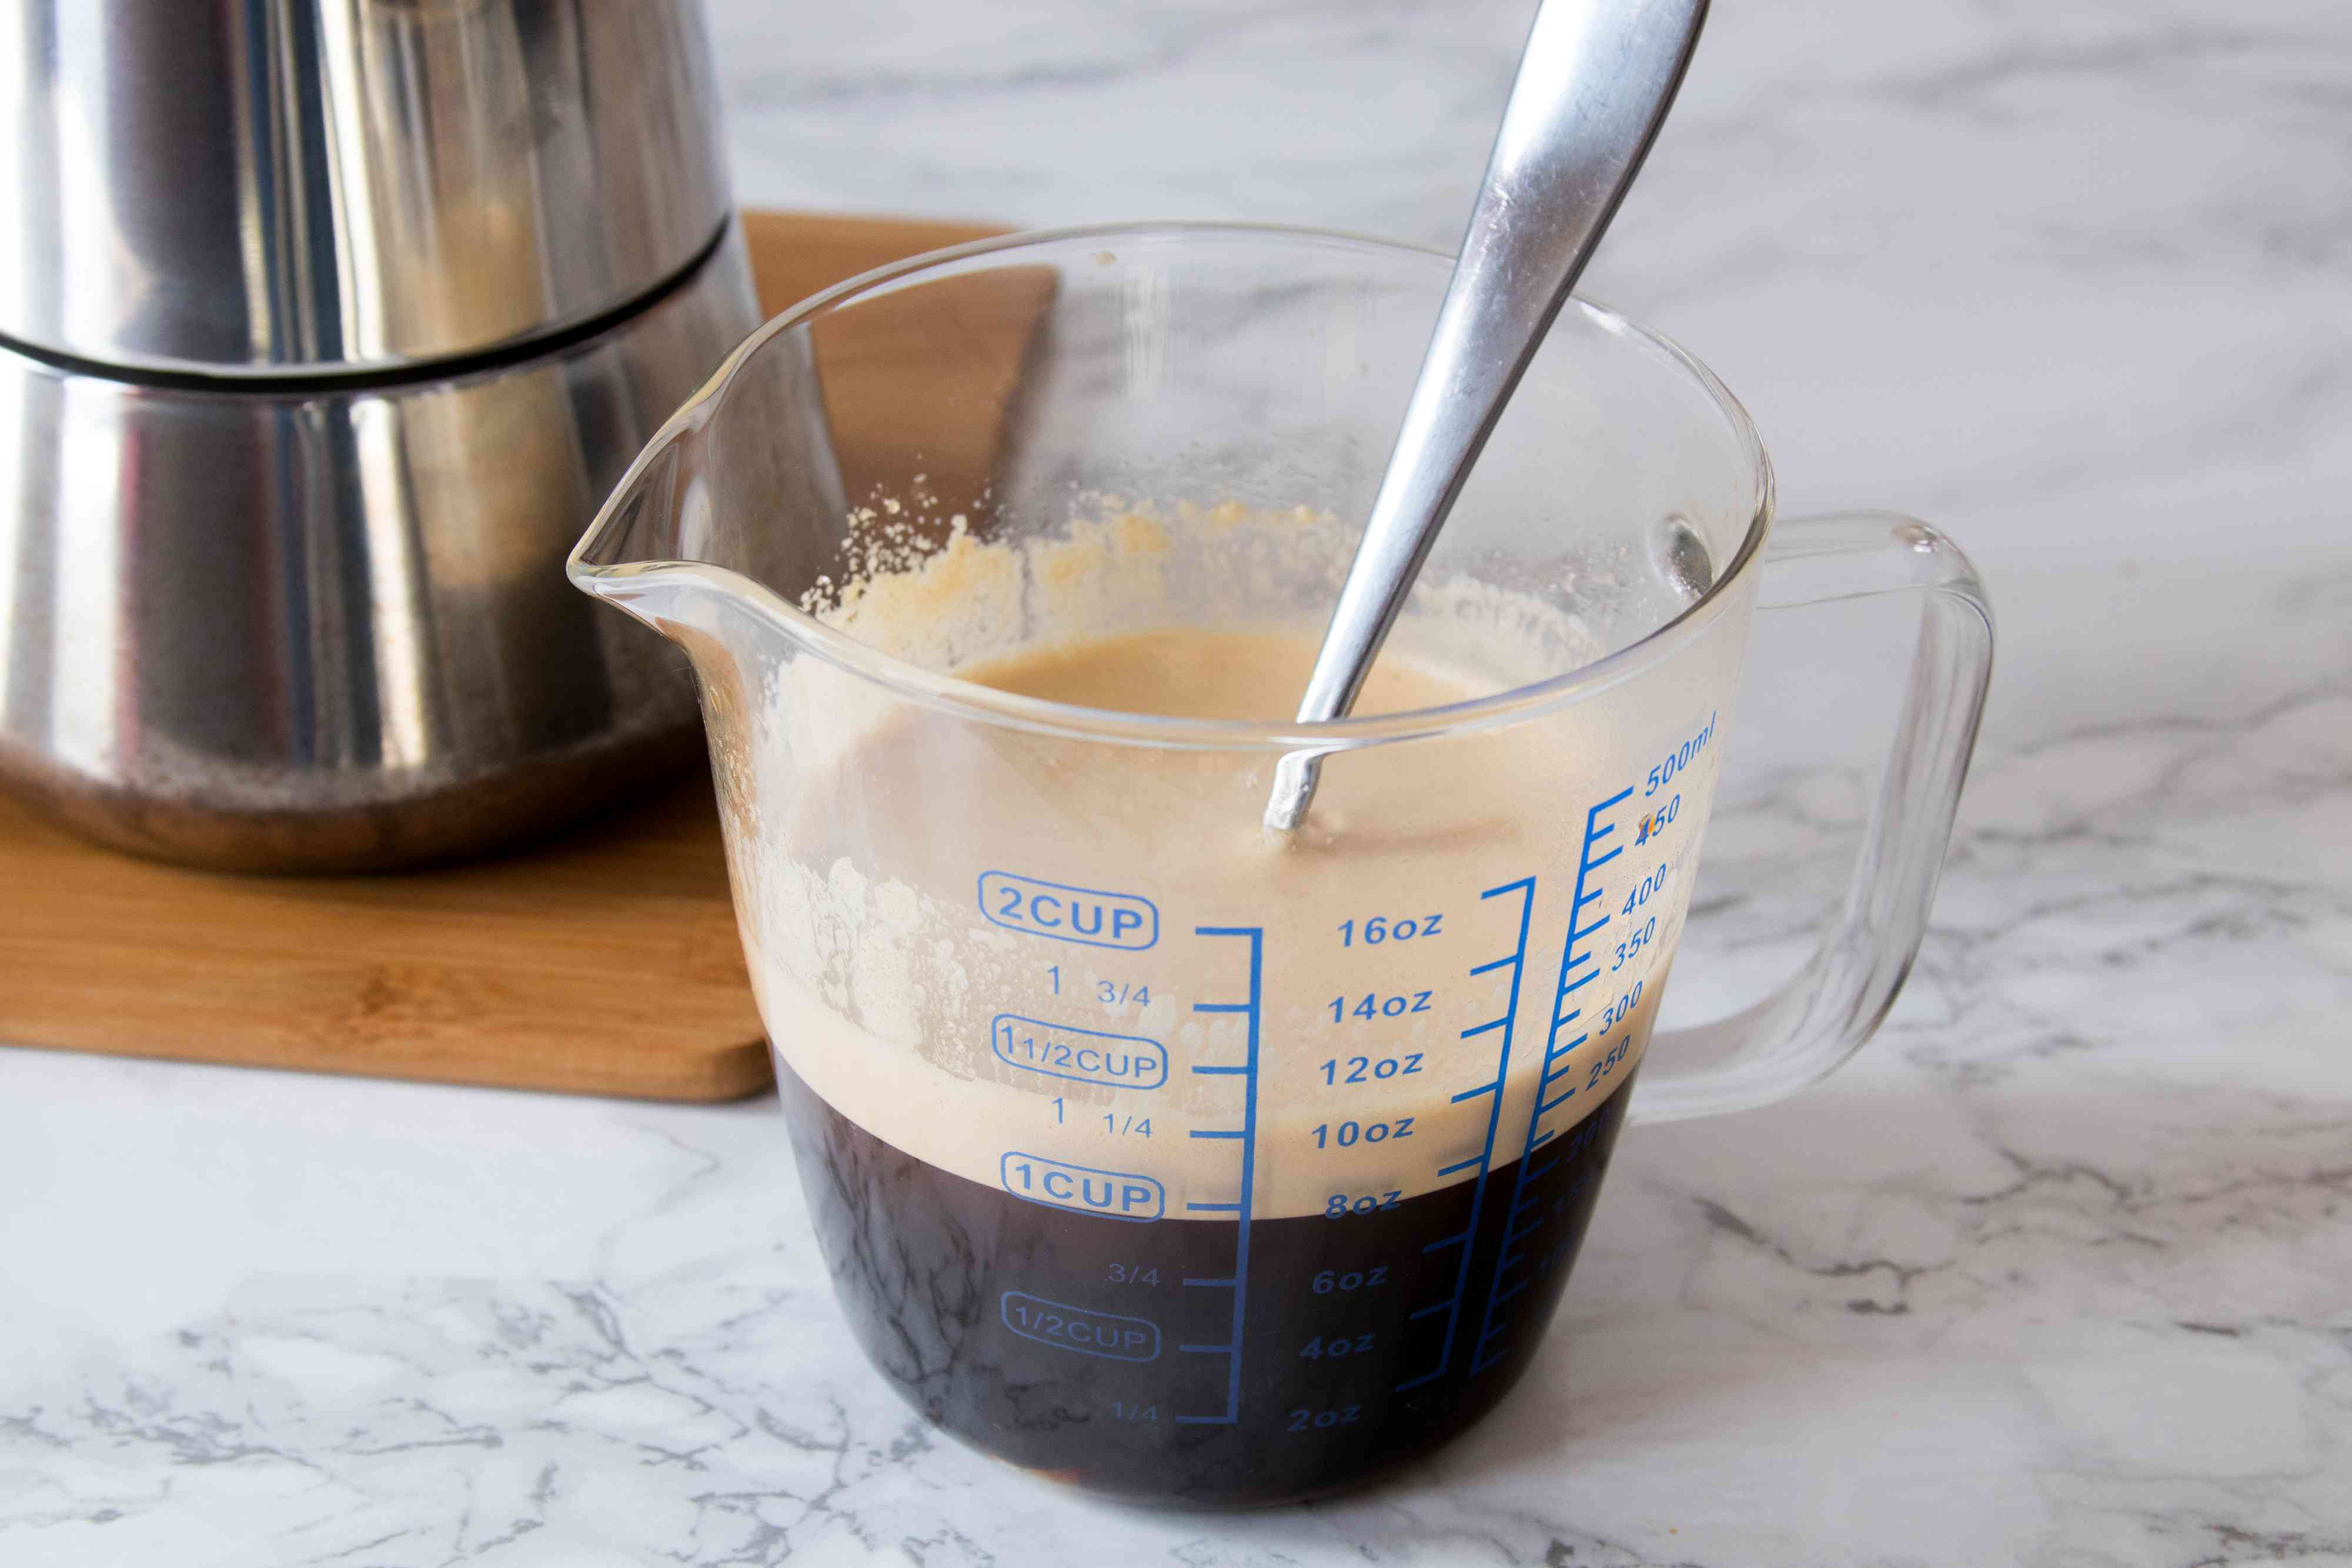 Forming the Ideal Crema for Cuban Coffee